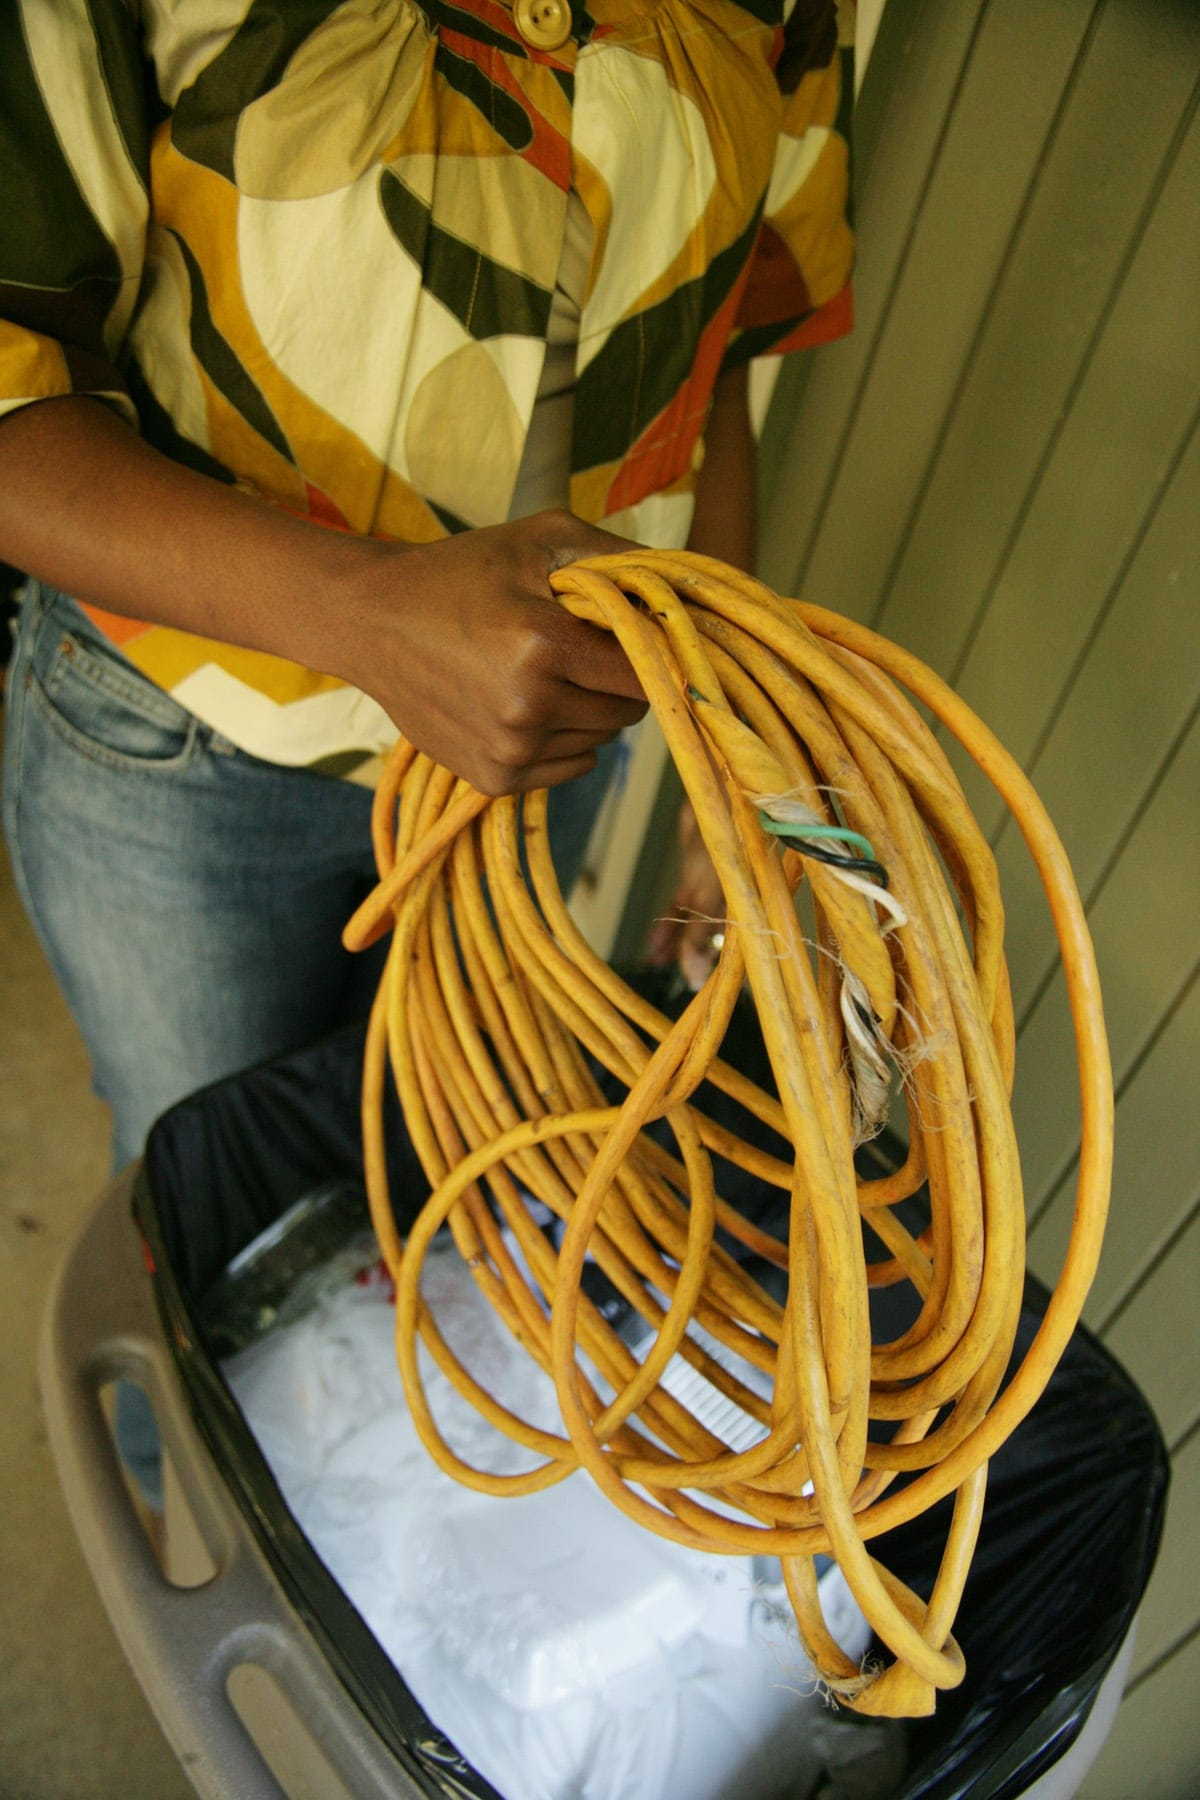 Electrical Safety Photo Gallery American Plug Wiring African Woman With Frayed Cord Over Trash Bin